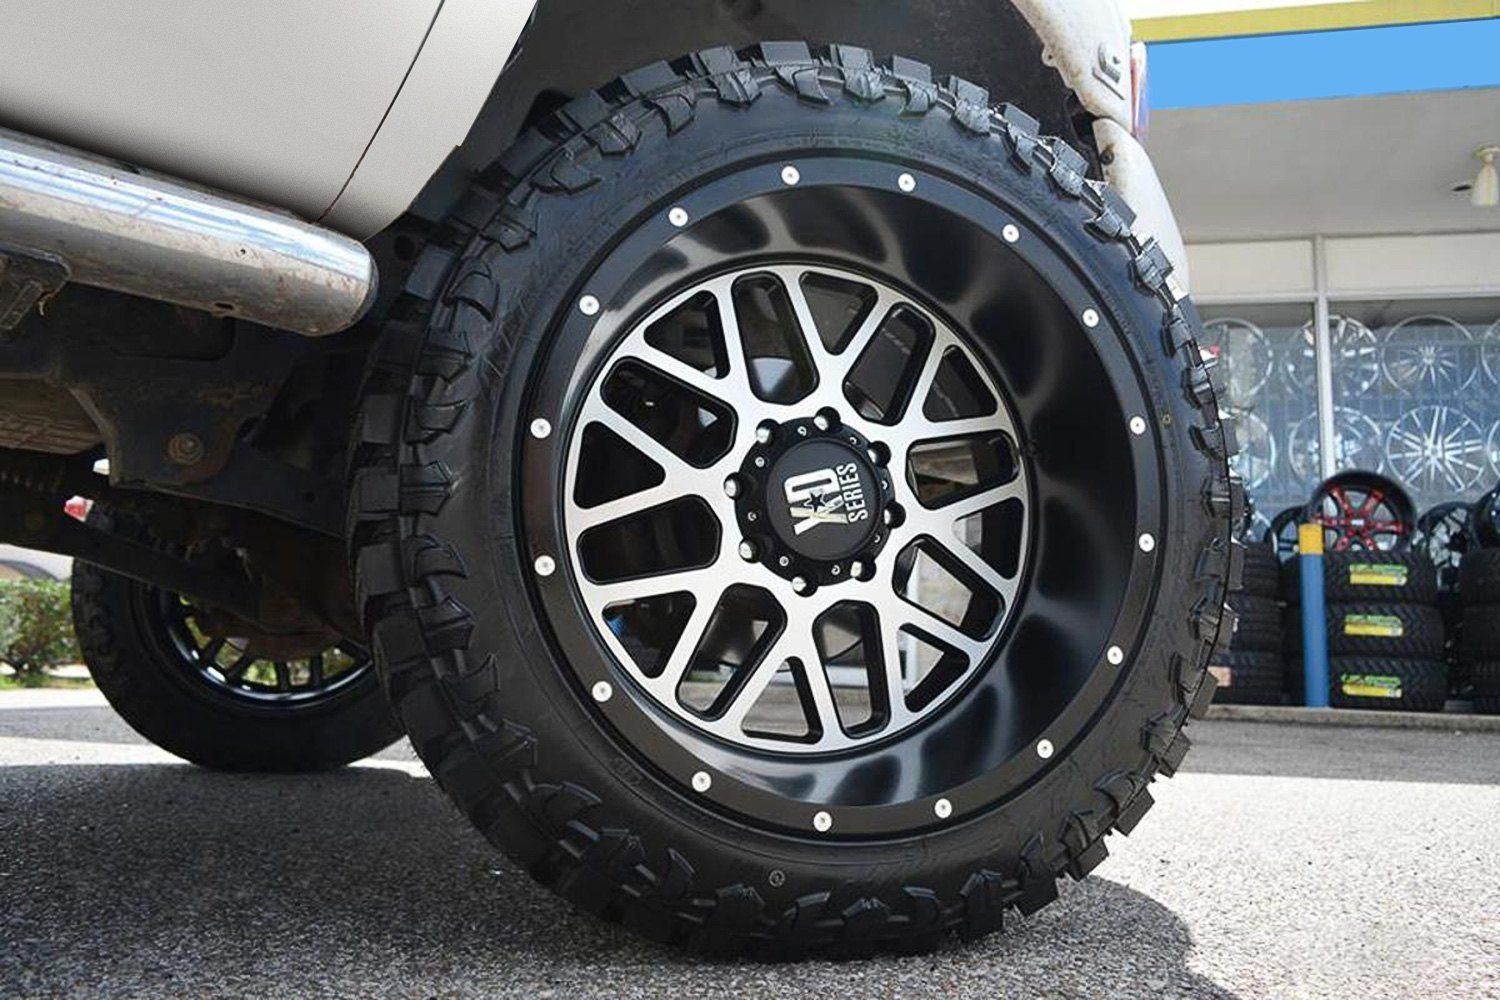 Xd Series Xd820 Grenade Satin Black With Machined Face Truck